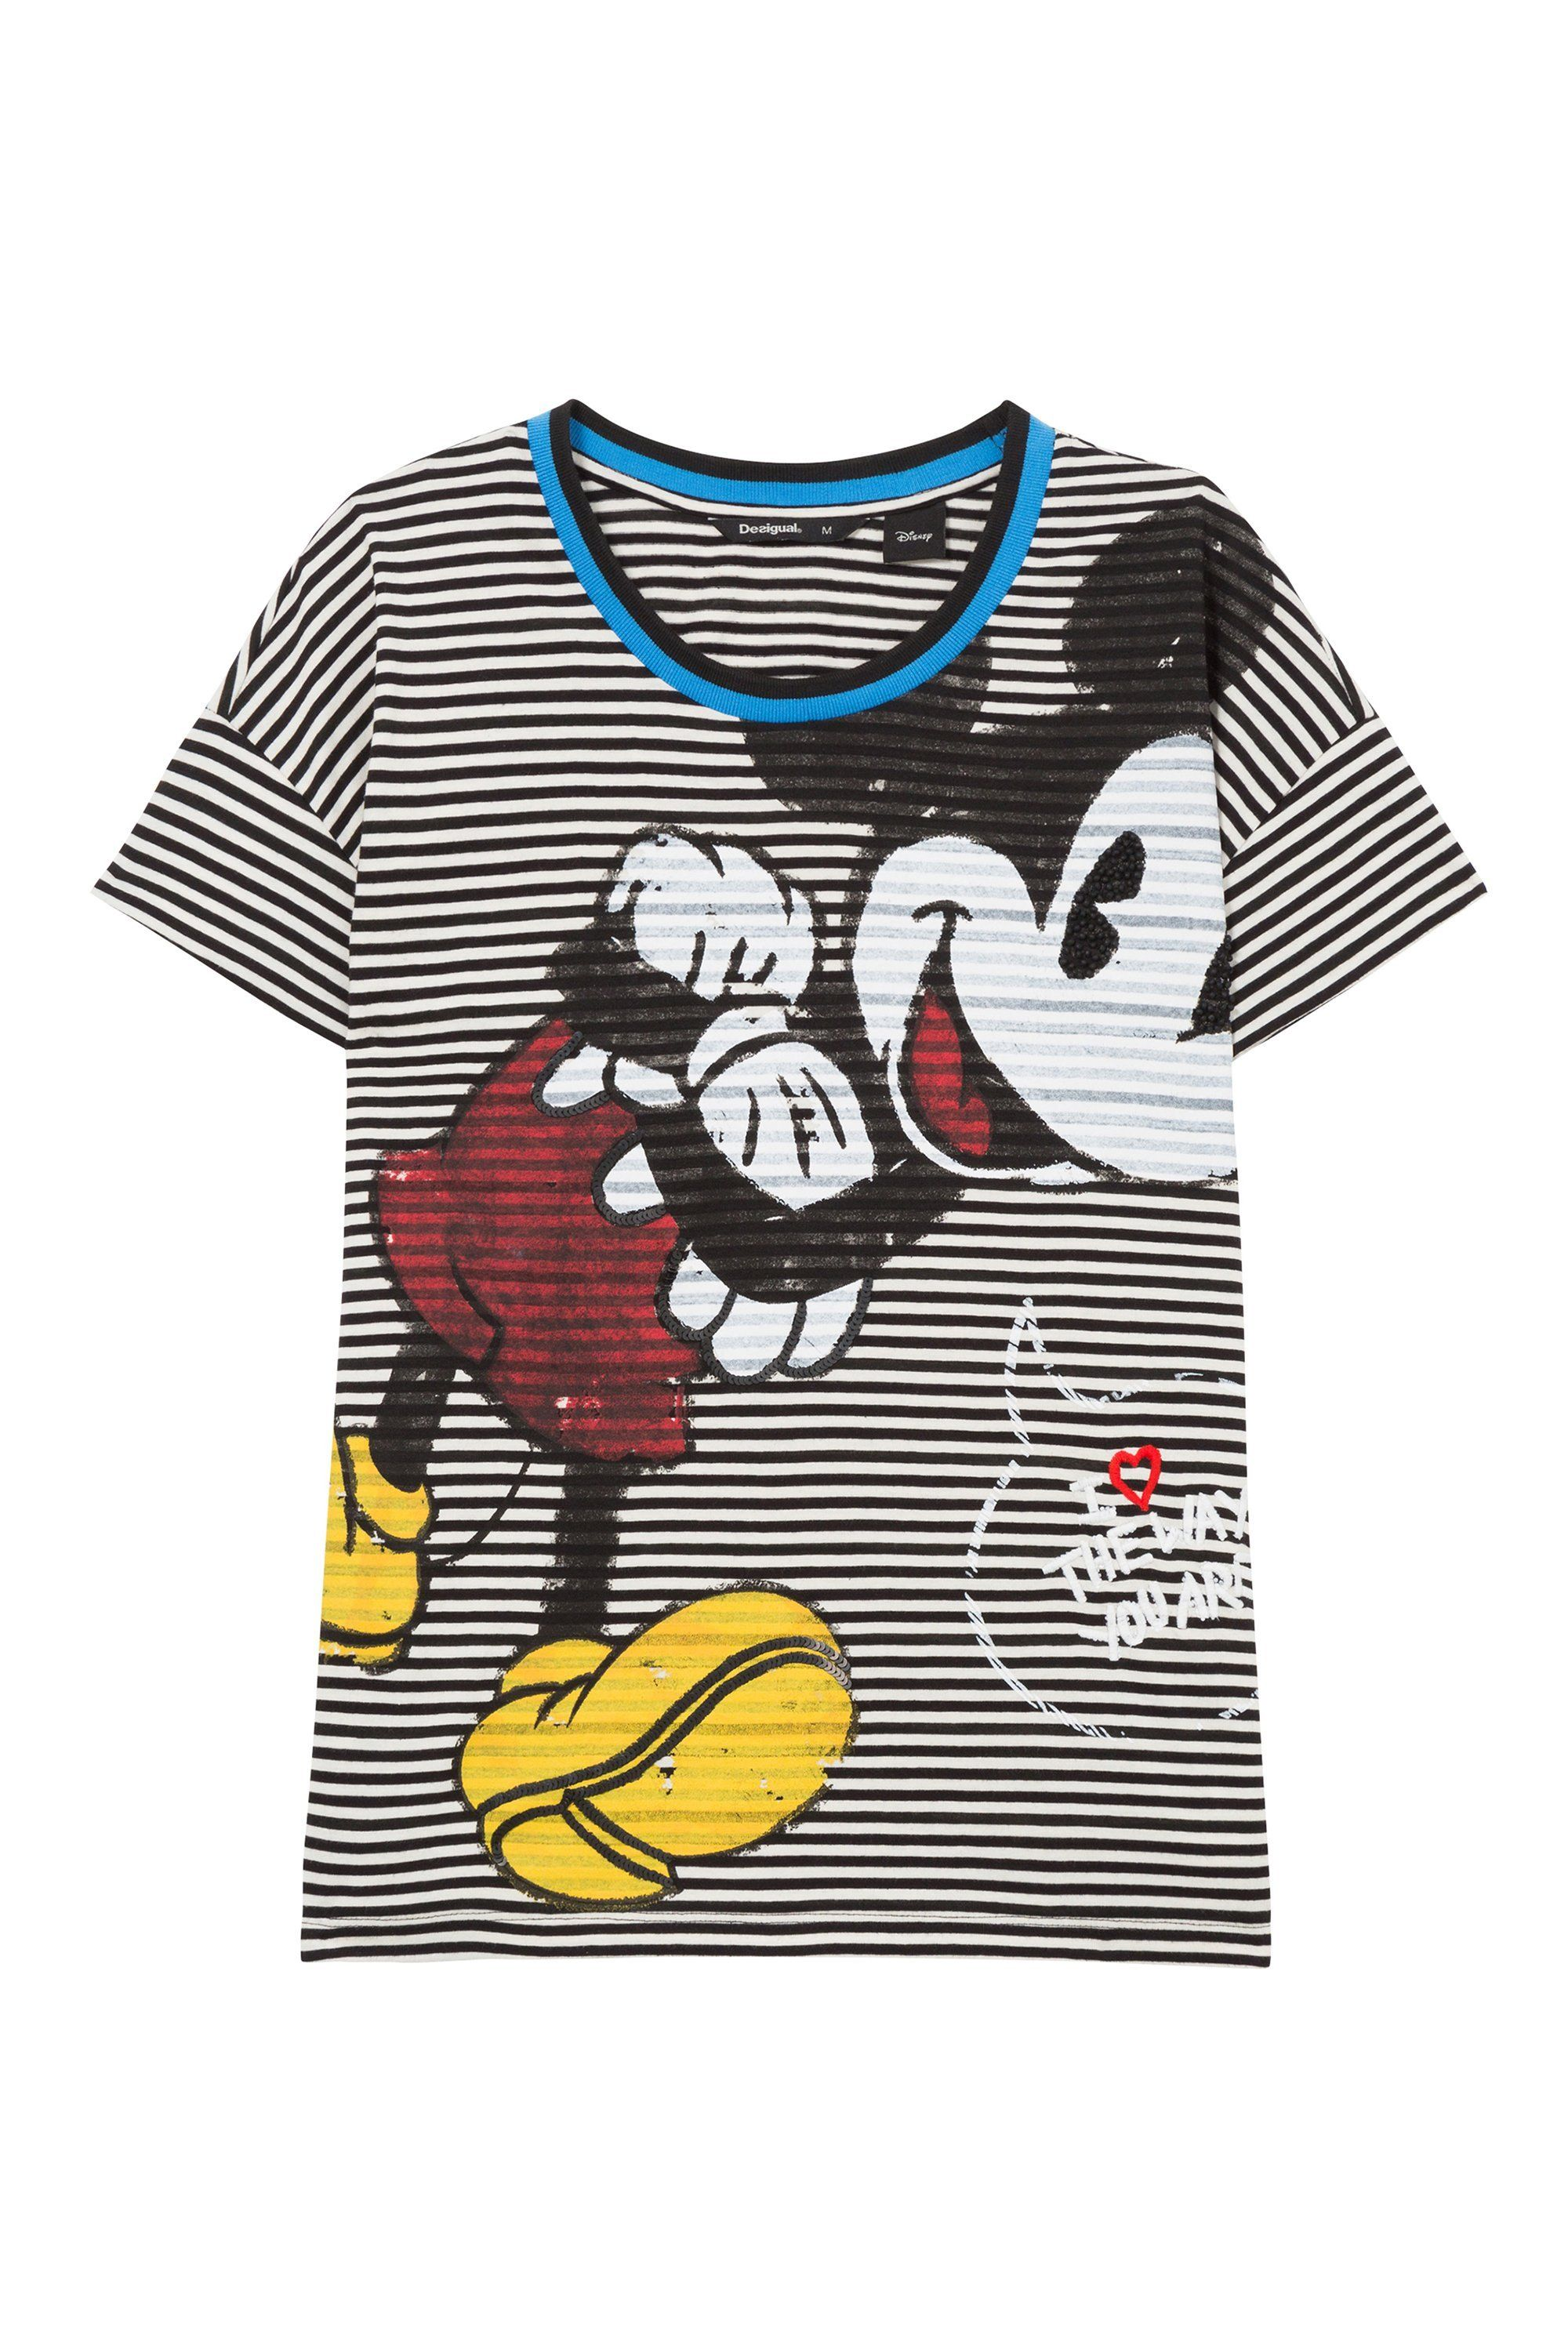 6199b6e6a Shop women's Mickey Mouse clothing at Desigual. Jackets, jeans, T-shirts  and sweatshirts with a vintage touch. Free in-store shipping.